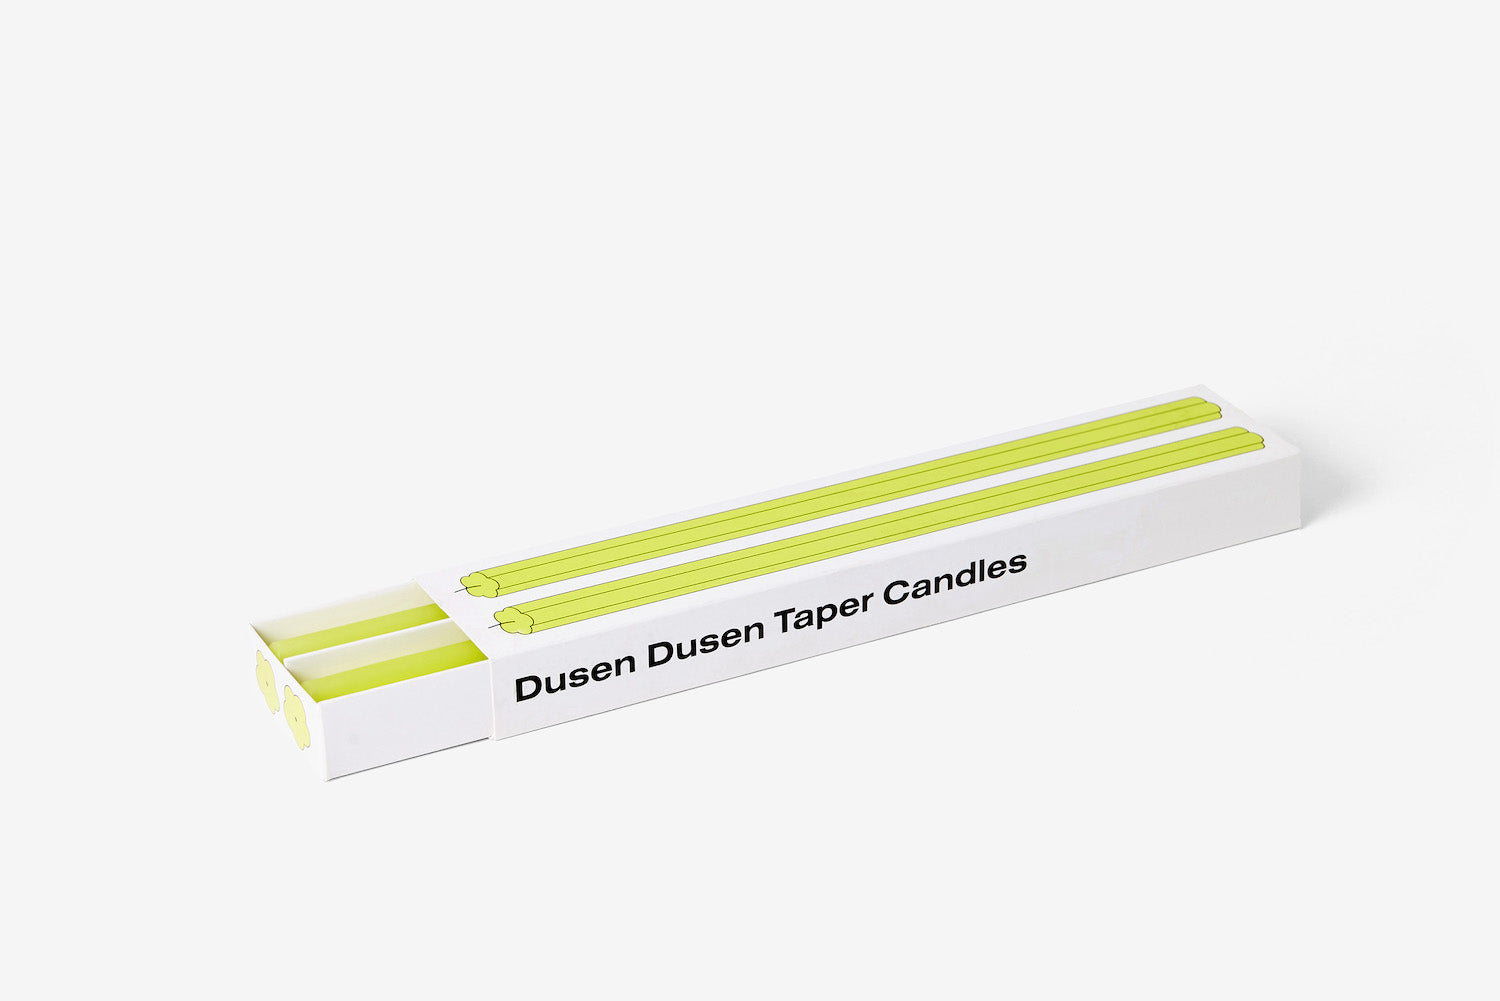 Dusen Dusen Taper Candles - Yellow - Set of 2